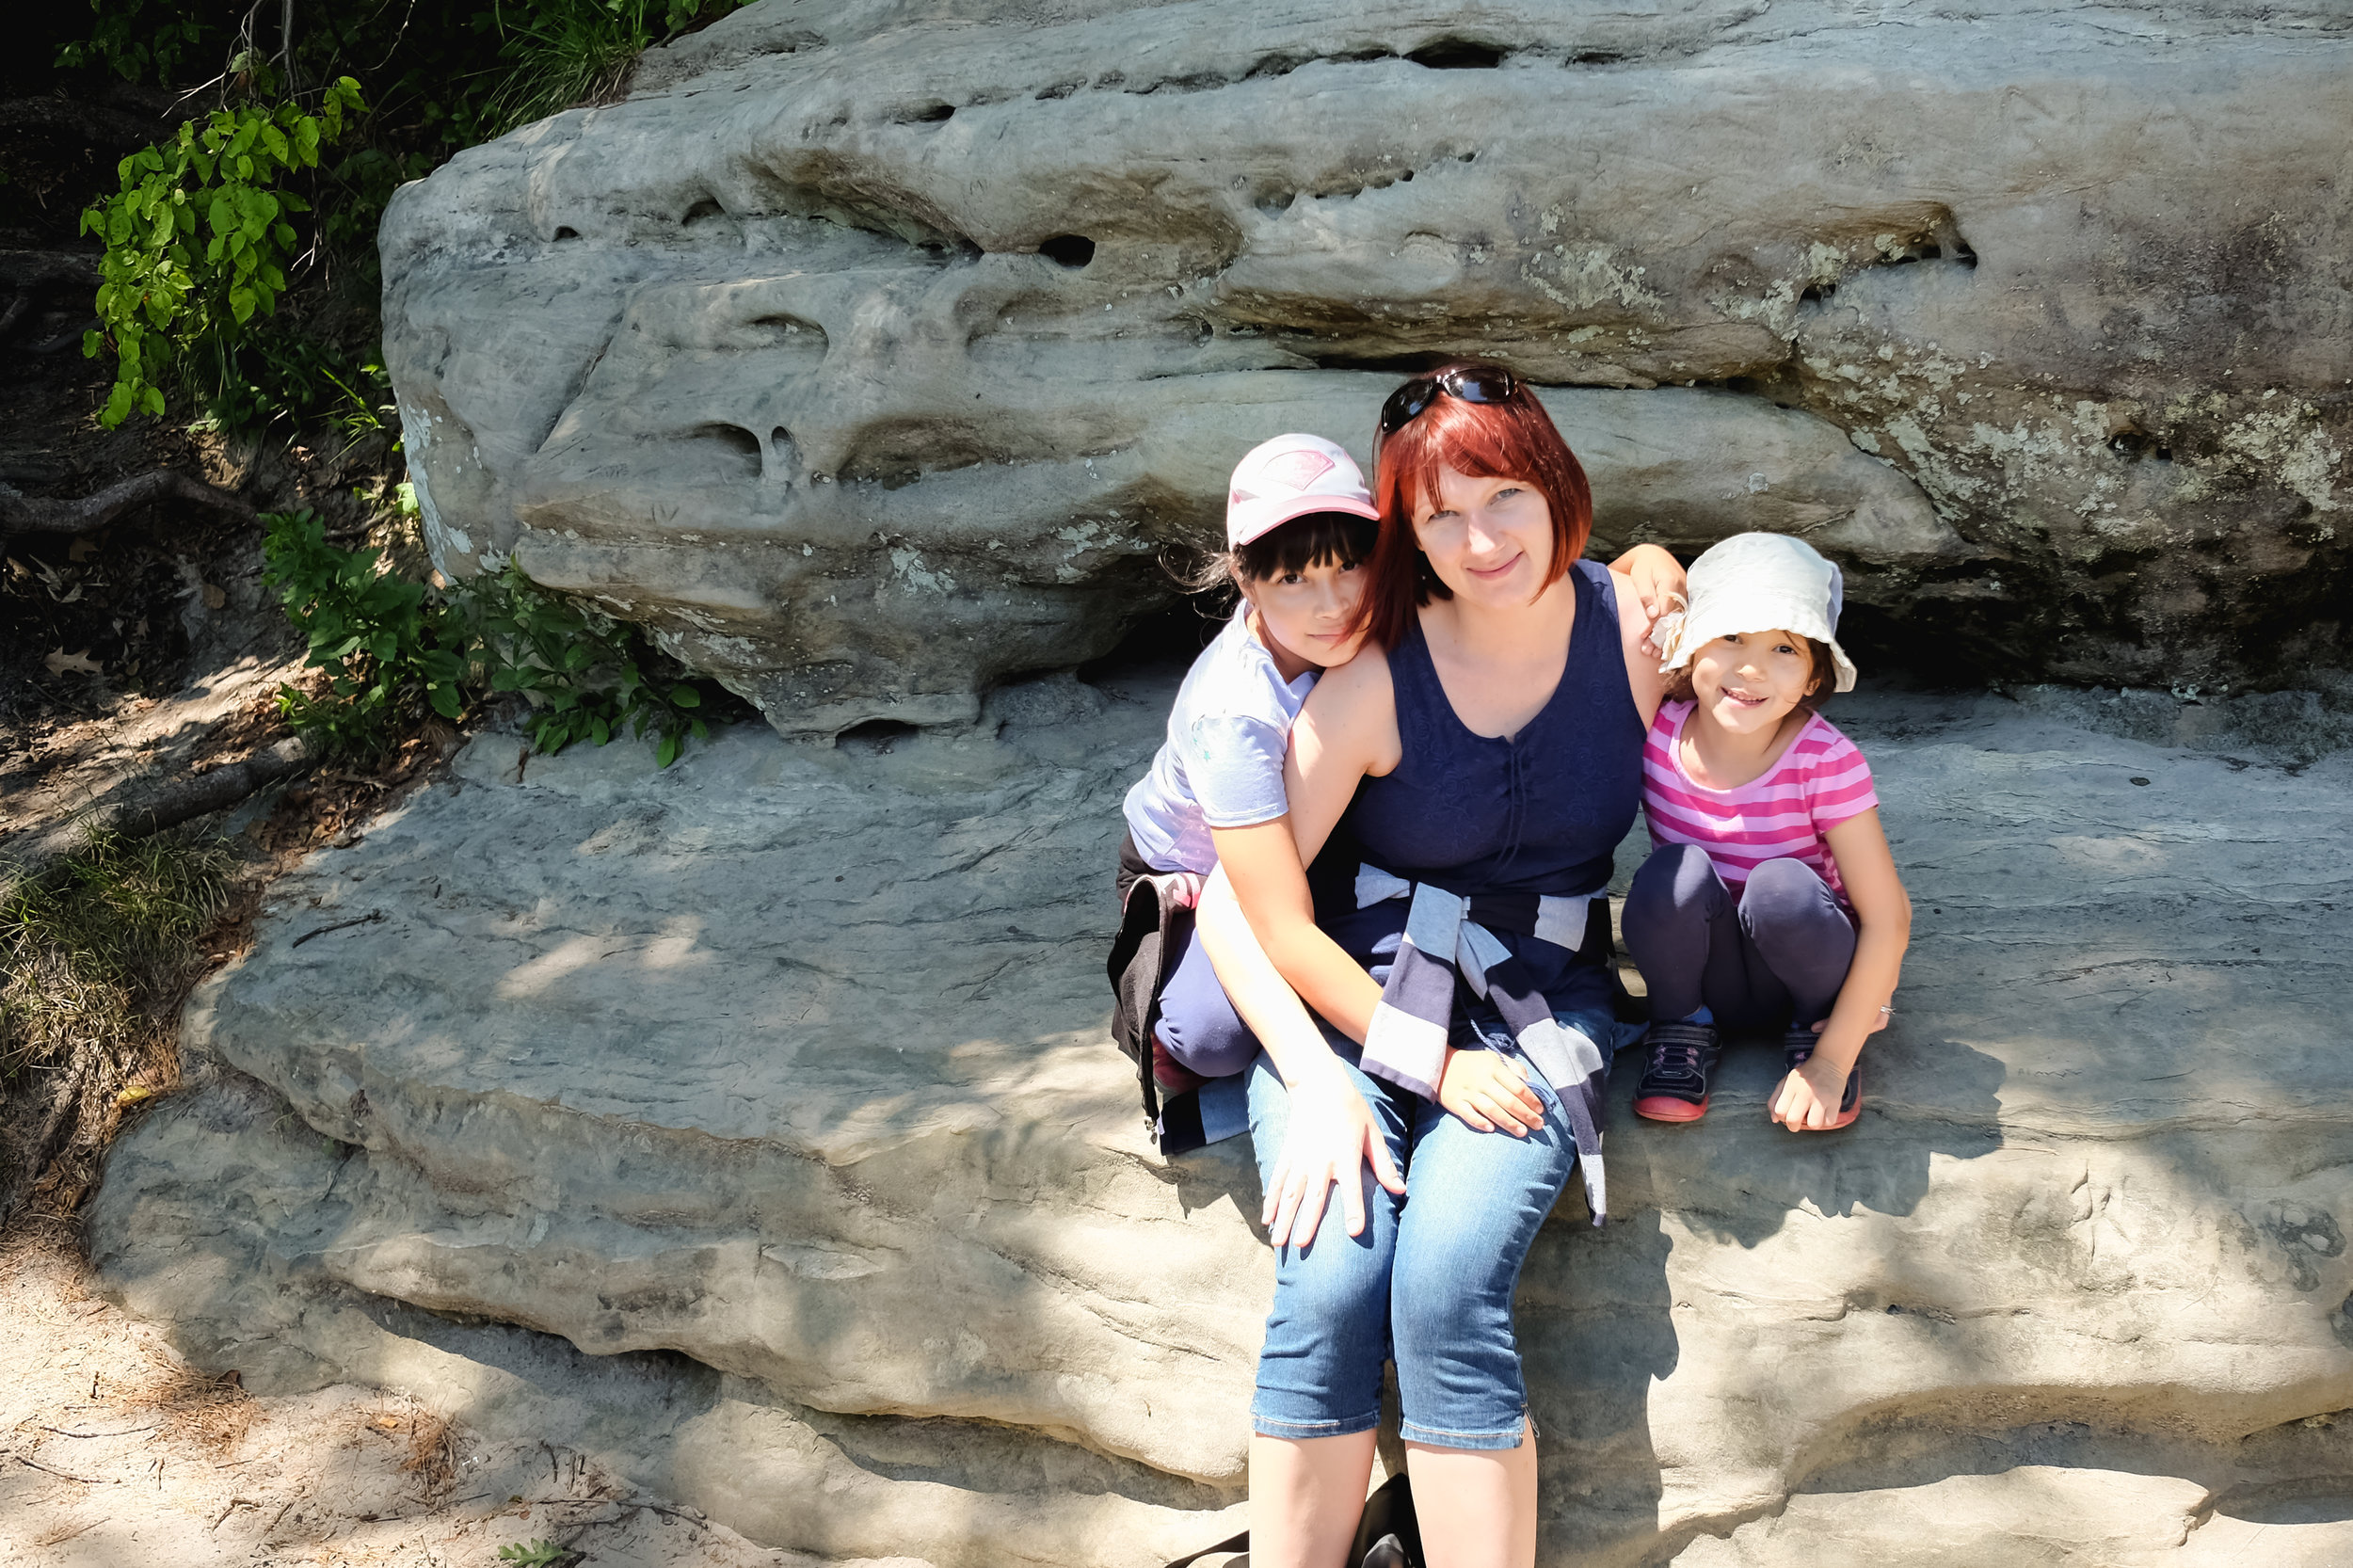 Family trip to Starved Rock.